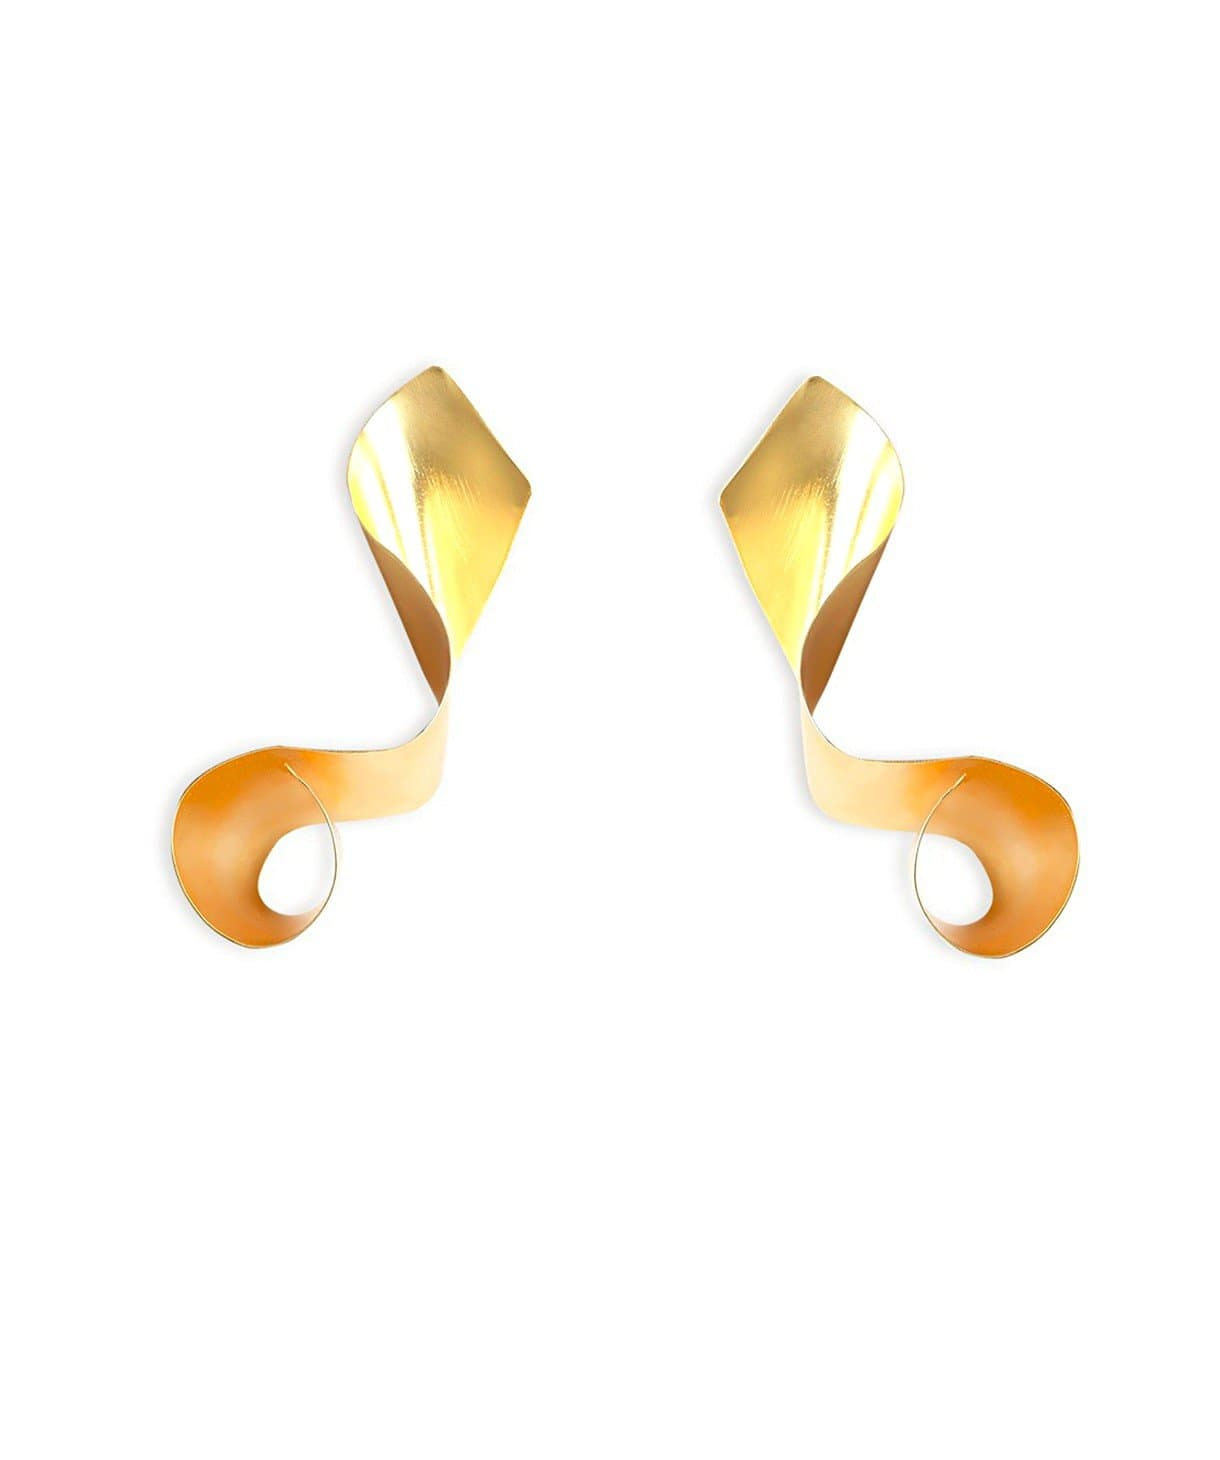 Twister Gold Earrings - Uptownie